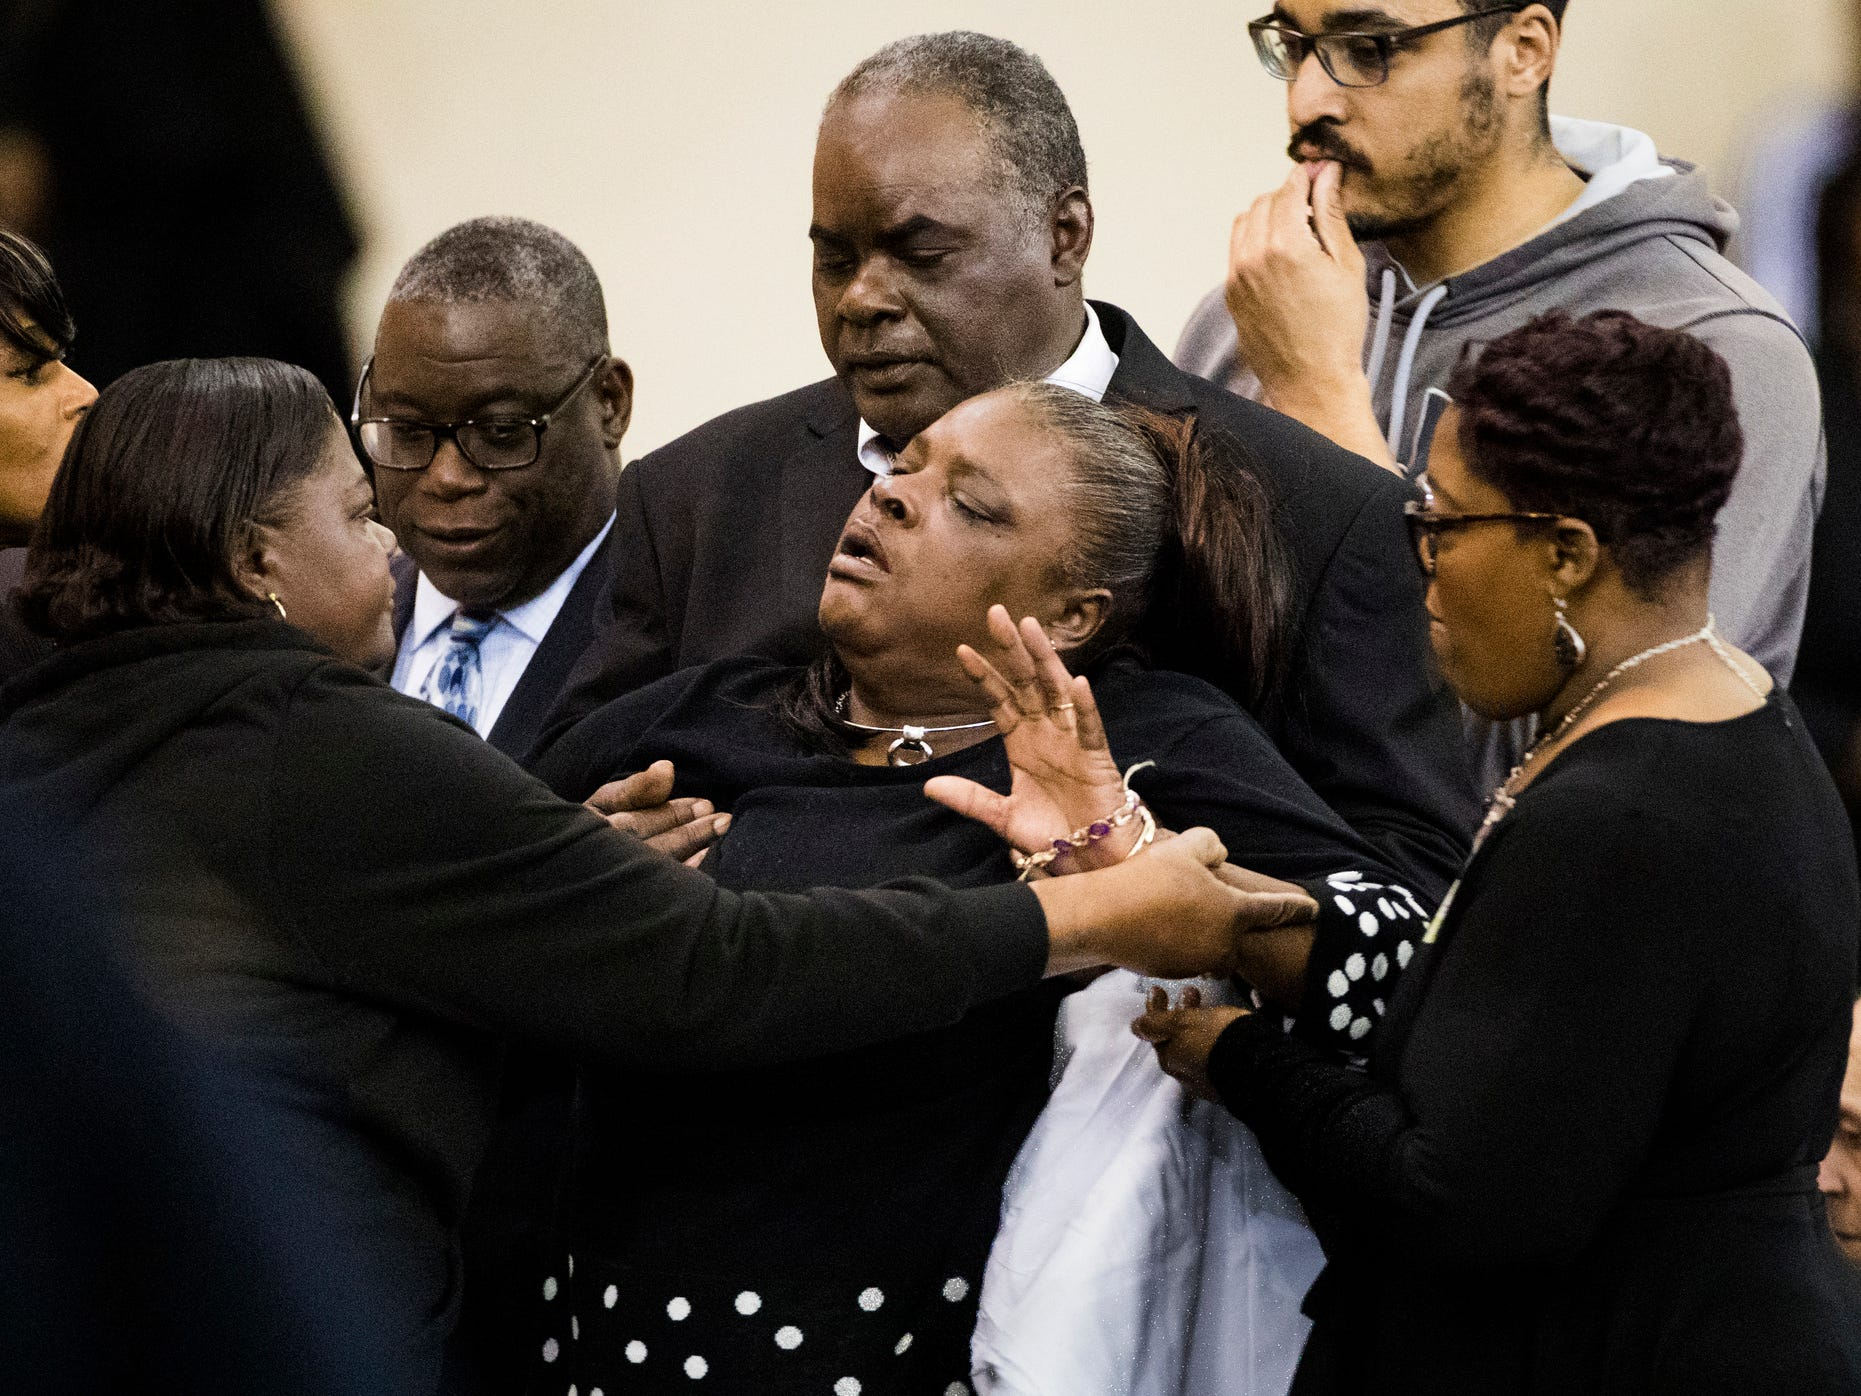 Family members holds one of Jazmine Barnes' grandmothers after she became emotional while walking to the casket.